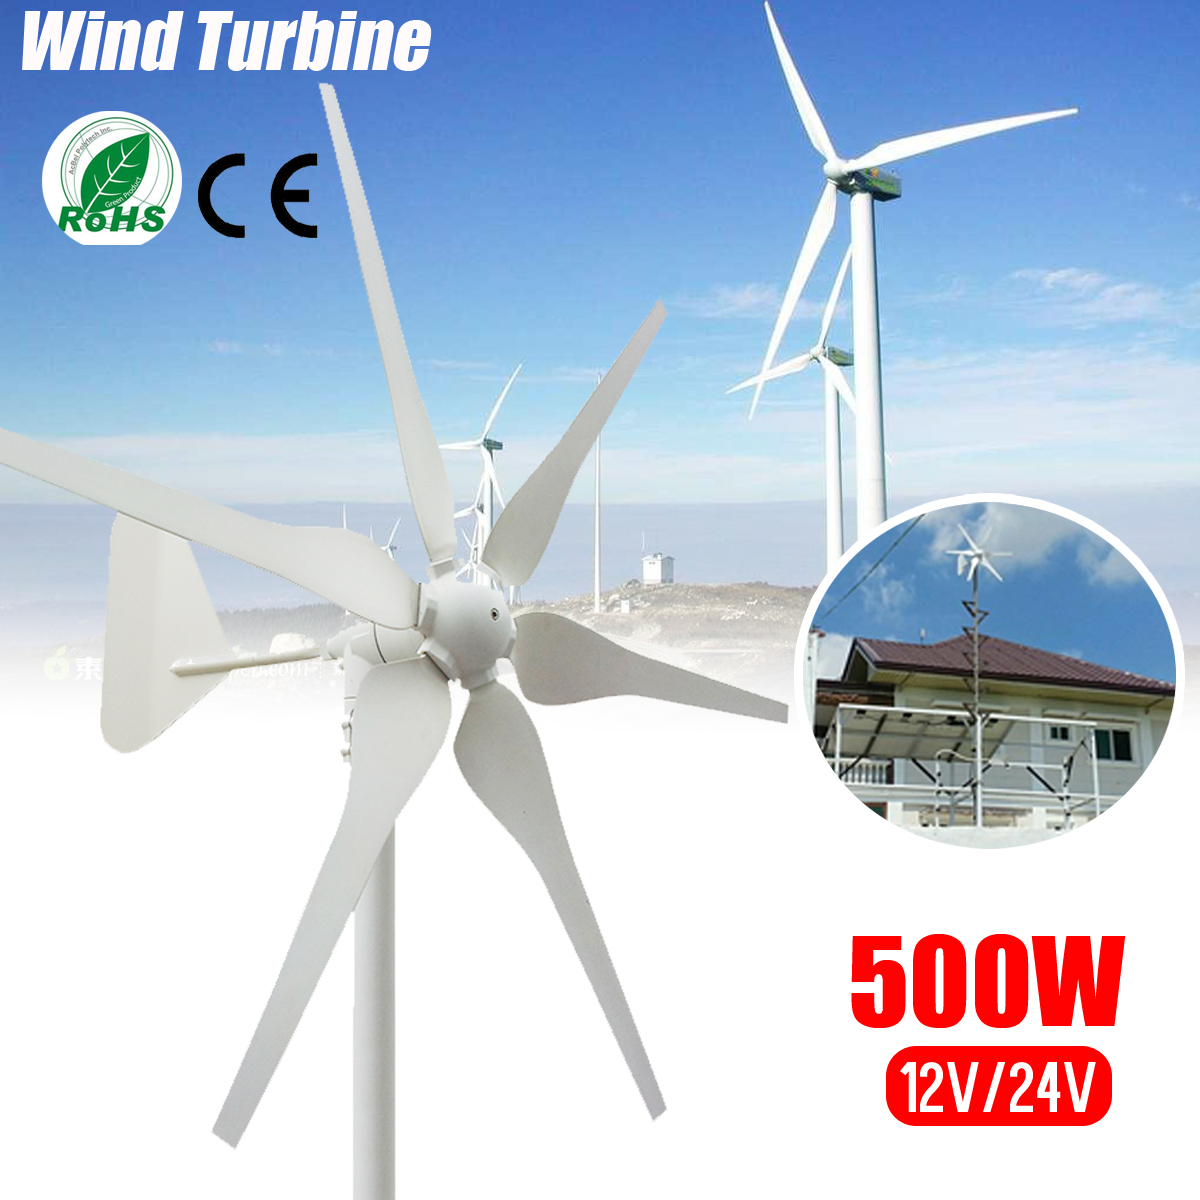 2018 6 Blades Wind Turbines Generator DC 12V/24V 500W Miniature Wind Turbines Residential Home With Controller for Home Use цена